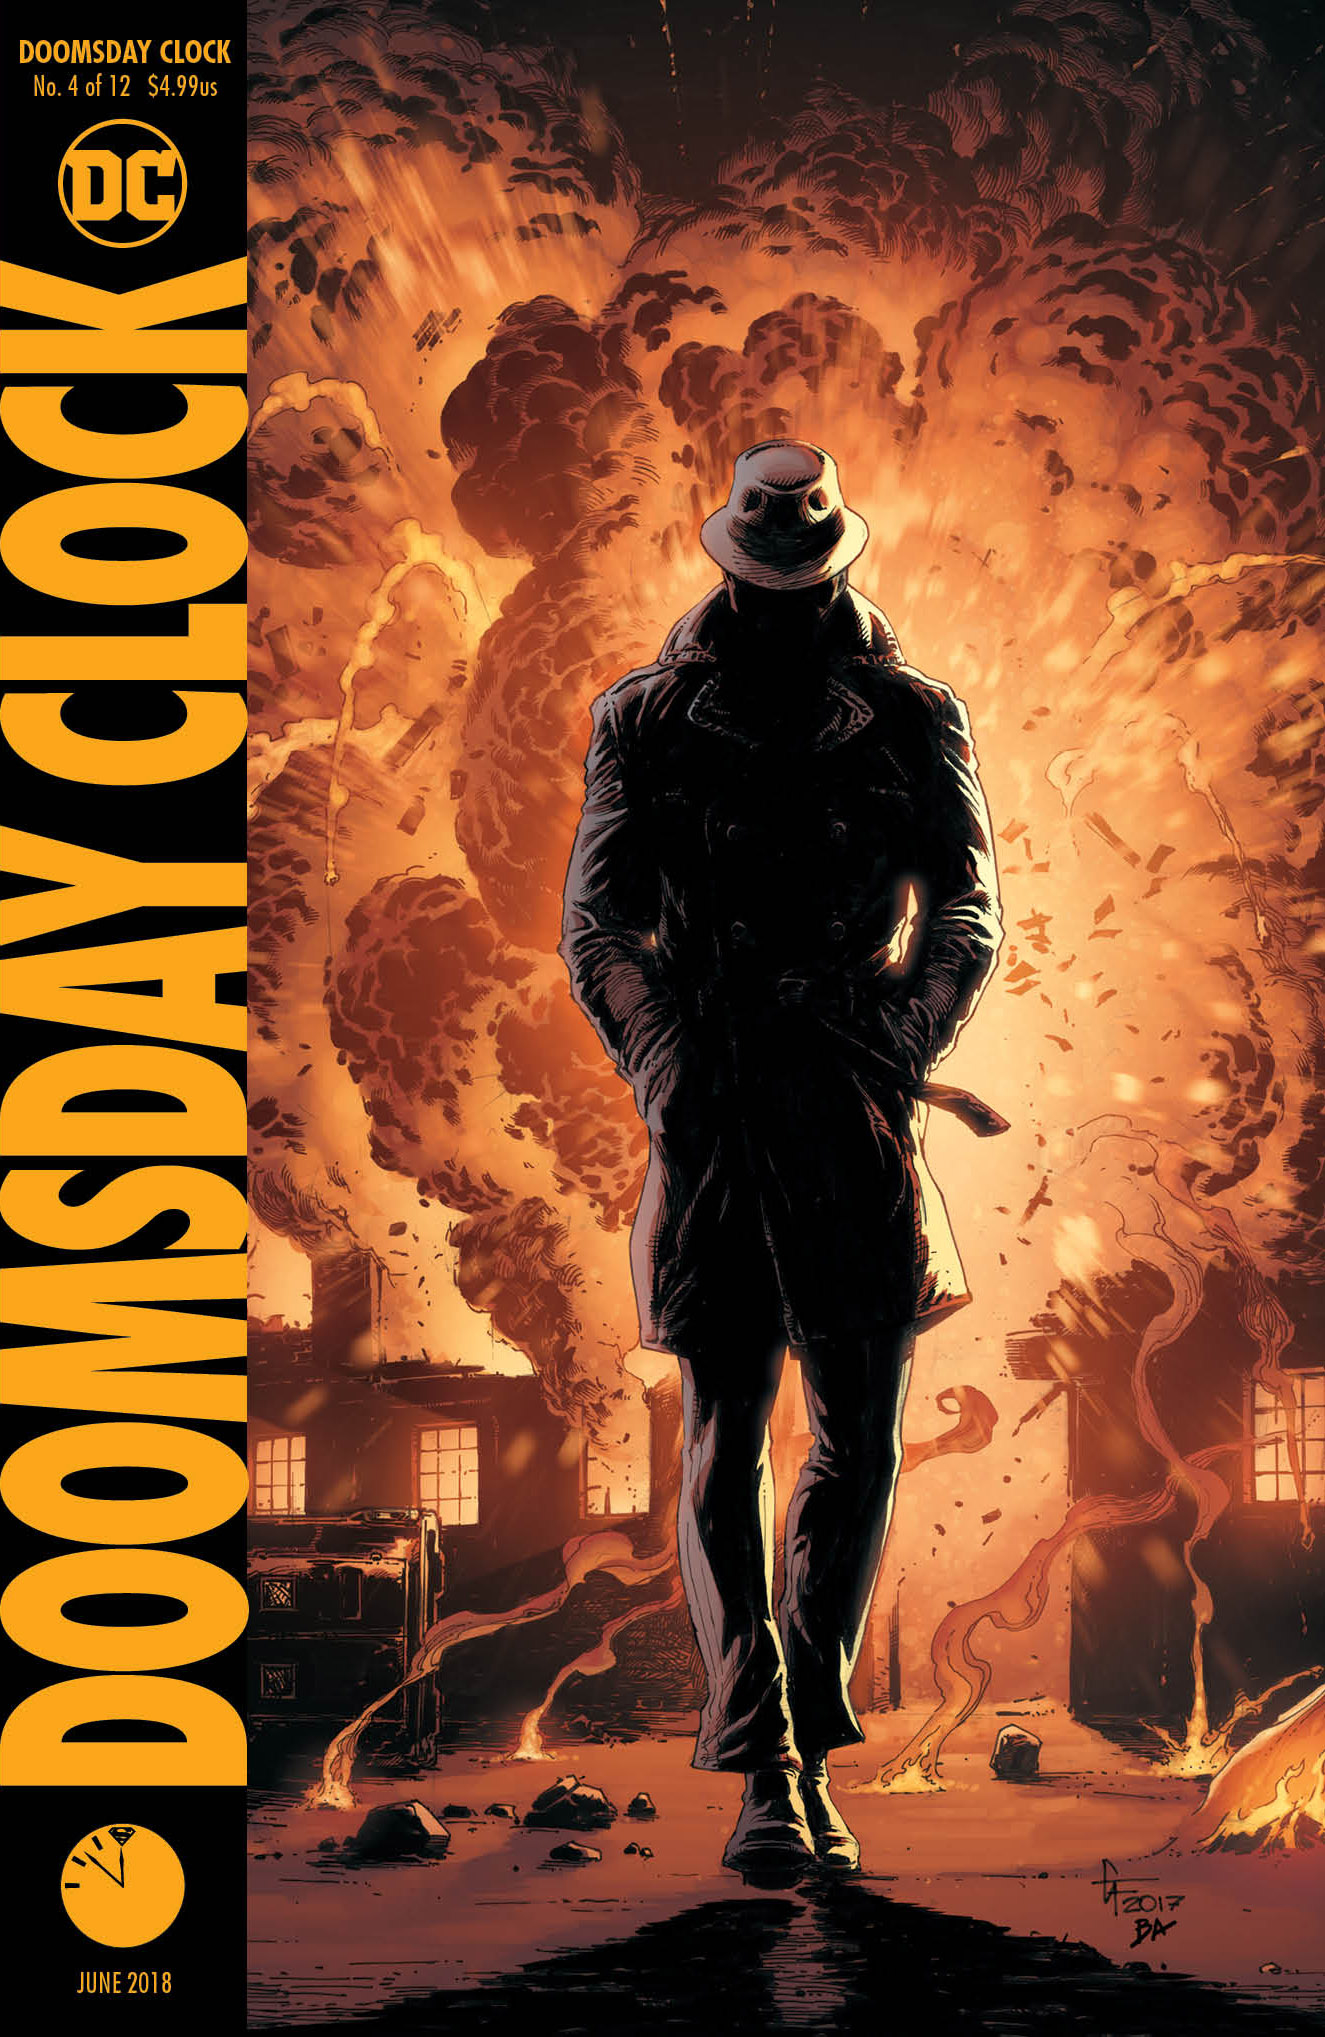 DOOMSDAY CLOCK #4 (OF 12) VAR ED